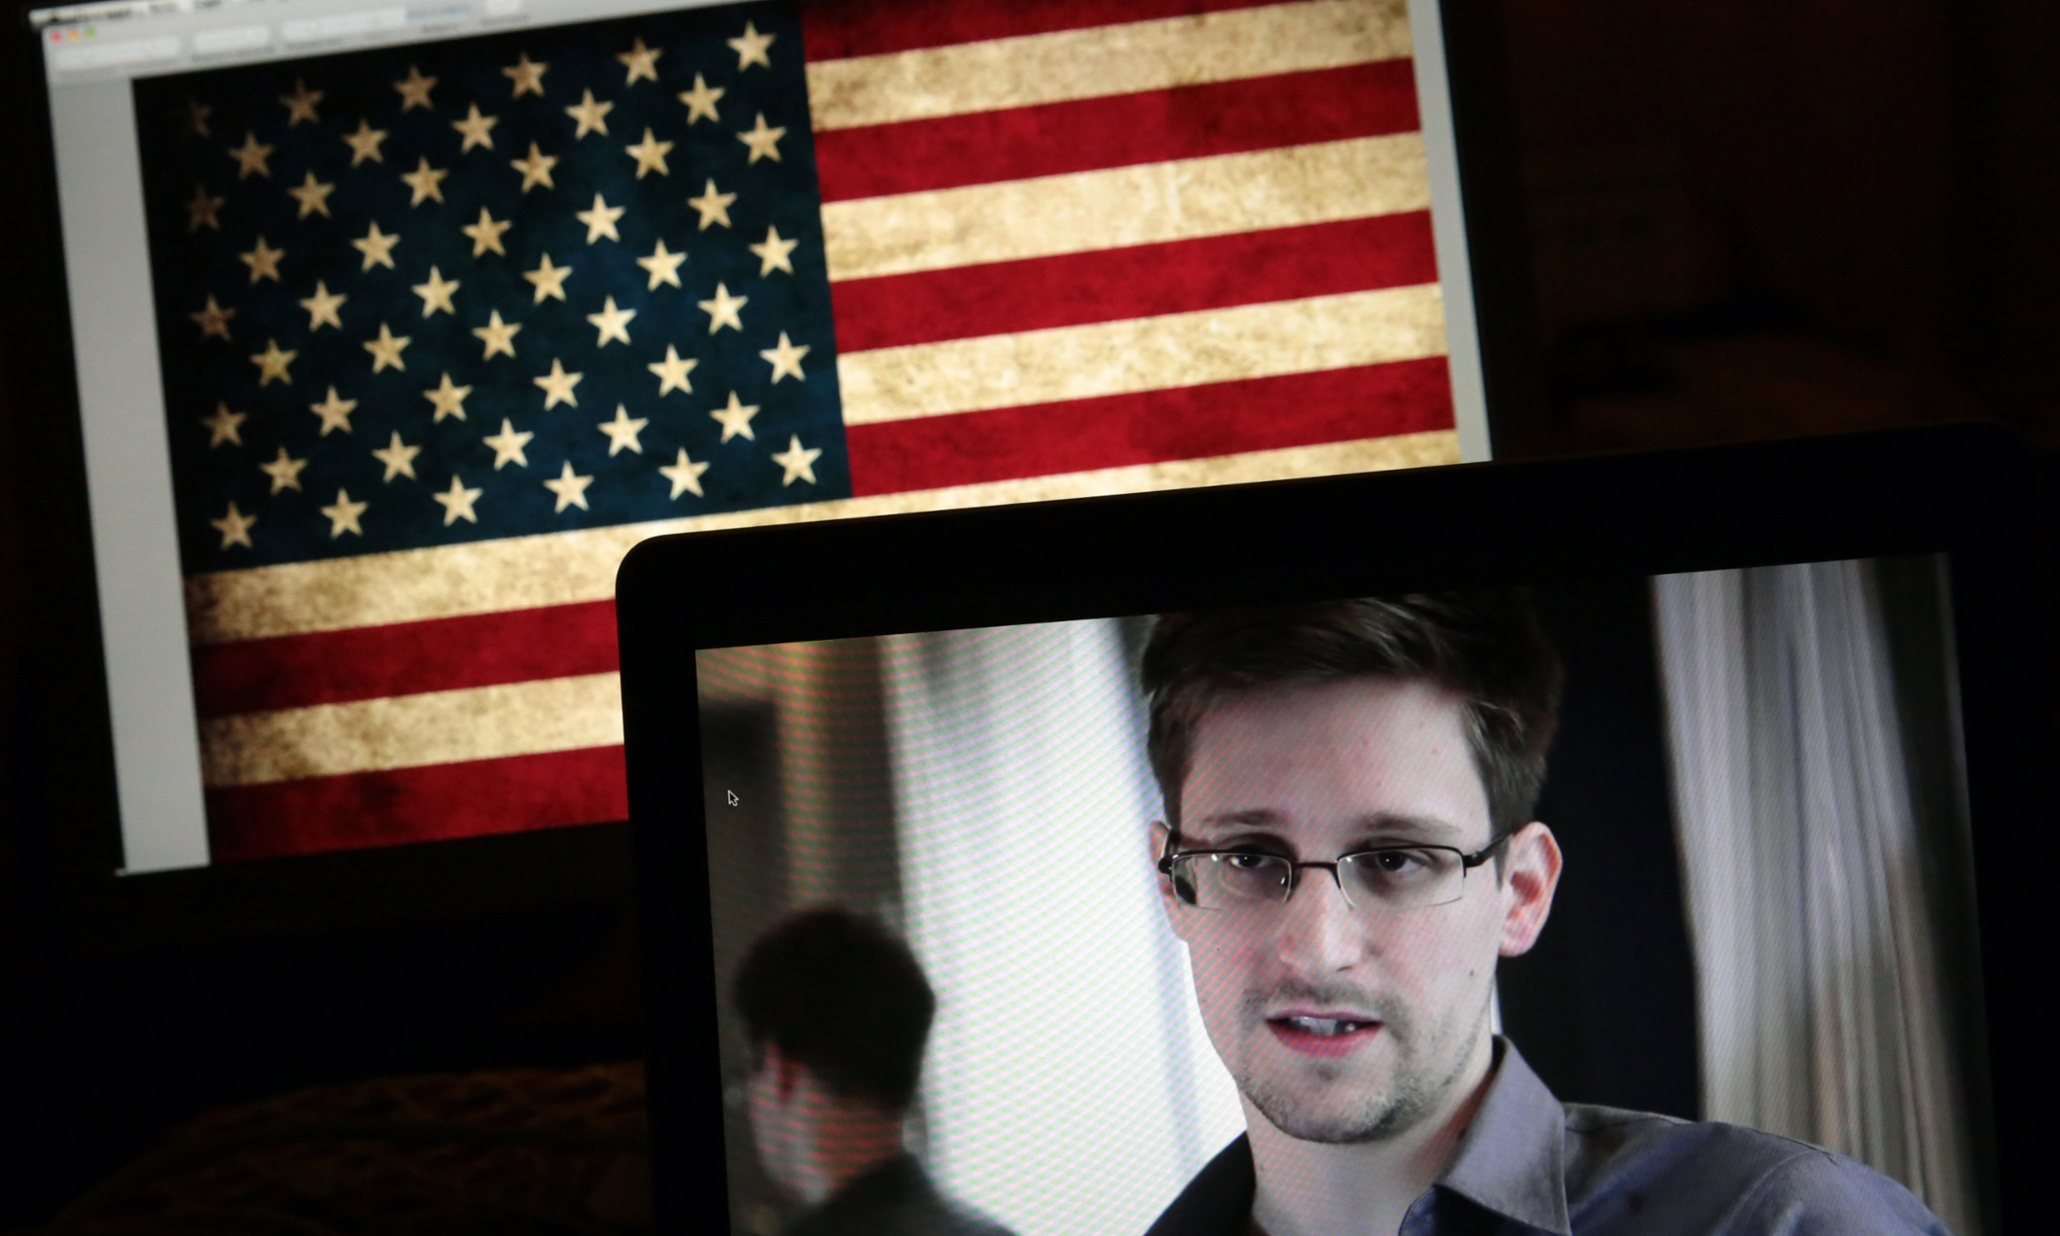 Russia and China broke into Snowden files to identify western spies, says MI6